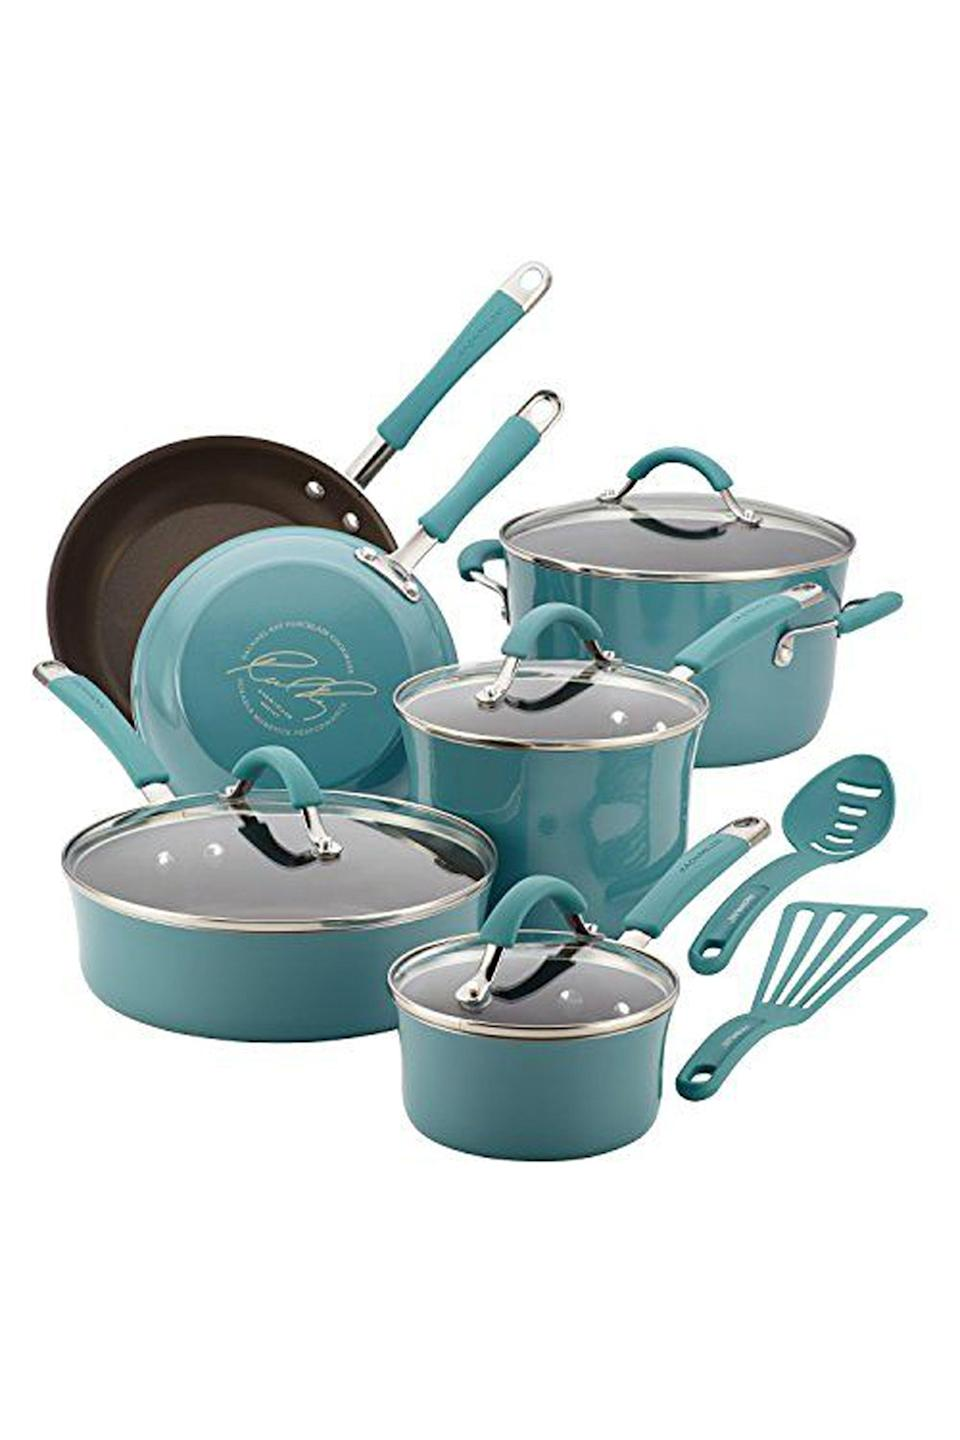 """<p><strong>Rachael Ray</strong></p><p>amazon.com</p><p><strong>$159.99</strong></p><p><a href=""""https://www.amazon.com/dp/B00JYHNNYK?tag=syn-yahoo-20&ascsubtag=%5Bartid%7C10049.g.29194509%5Bsrc%7Cyahoo-us"""" rel=""""nofollow noopener"""" target=""""_blank"""" data-ylk=""""slk:Shop Now"""" class=""""link rapid-noclick-resp"""">Shop Now</a></p><p>Cooking can be a hassle when you have a shared kitchen, but if they're in their own apartment, they'll definitely use a cookware set—especially one in a gorge blue shade.</p>"""